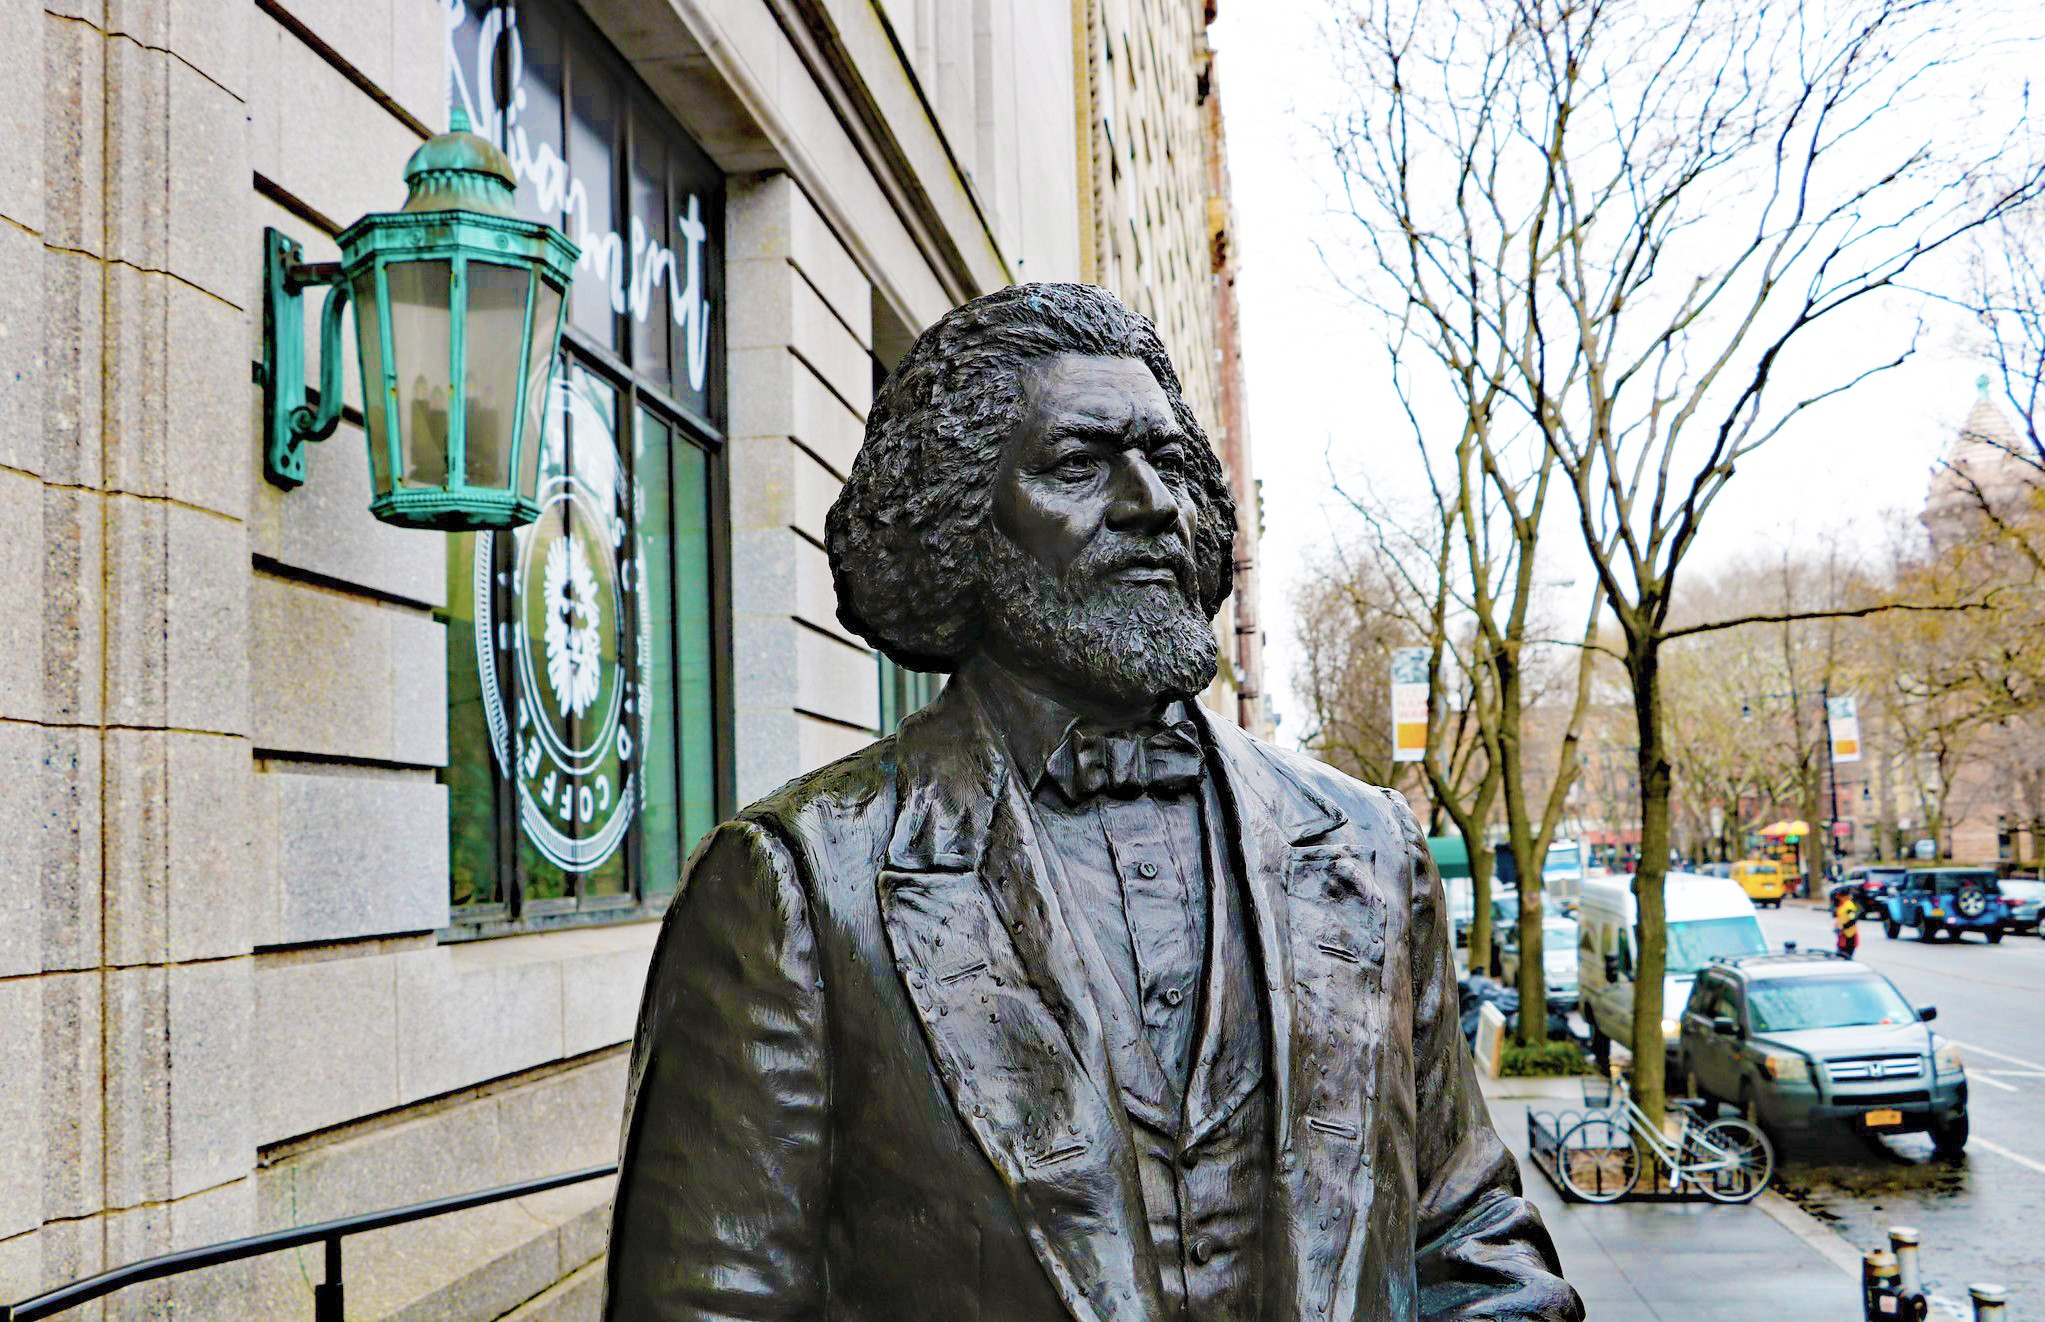 Bronze statue of a man from the nineteenth century. He's looking forward, and stands next to a decorative copper lamp.